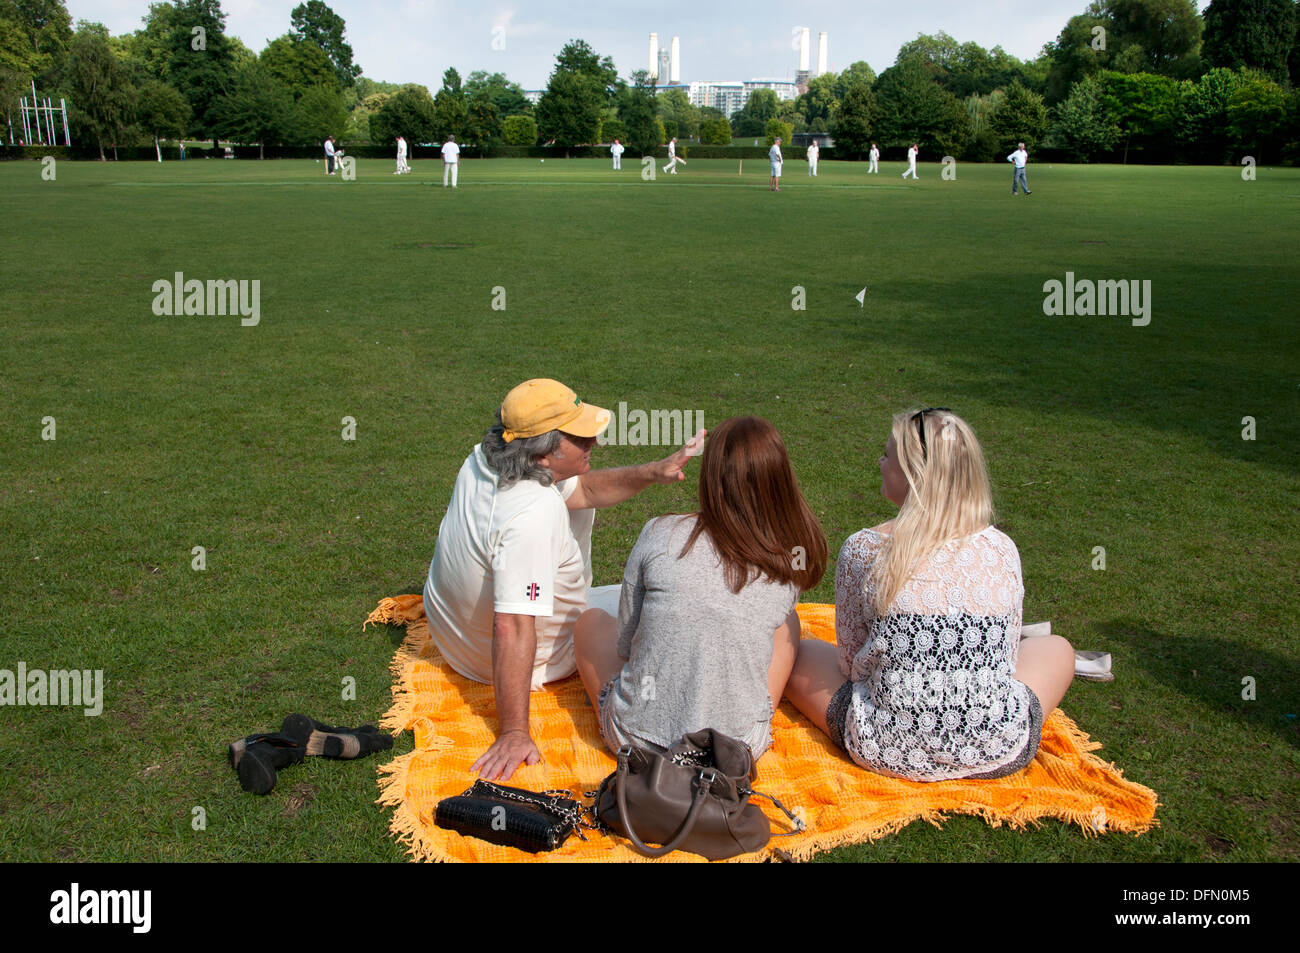 Battersea, London 2013. Amateur cricket match.A small group watch the game with power station in background - Stock Image